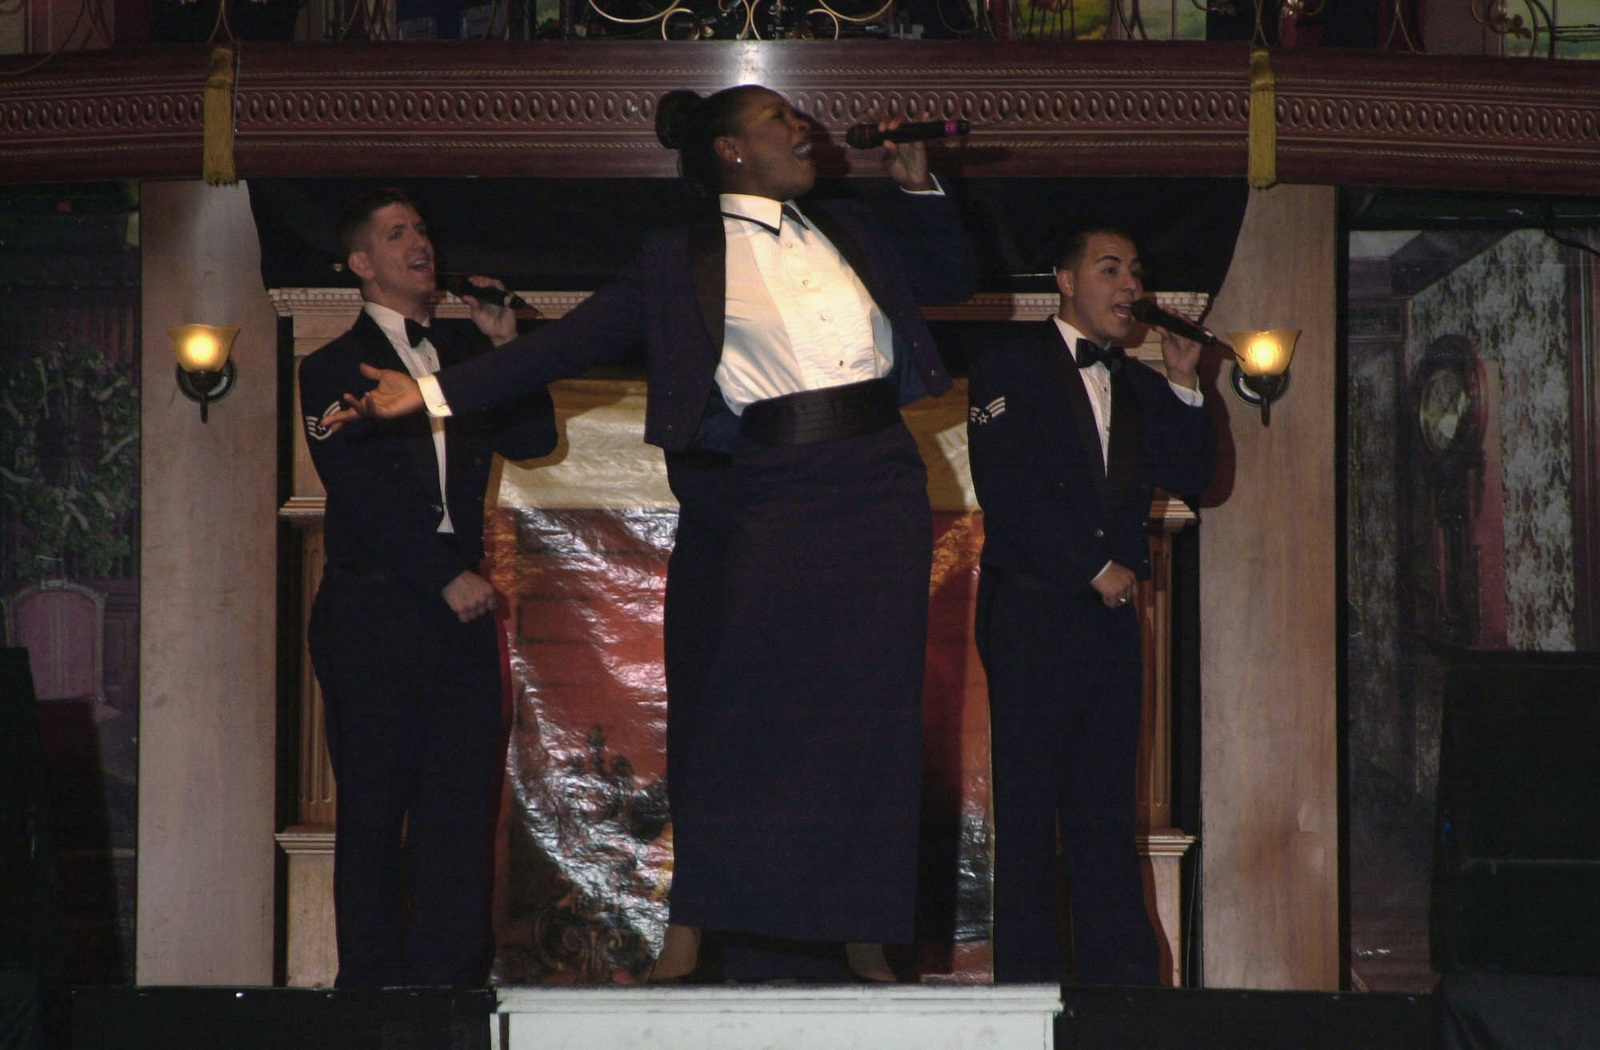 Members of the US Air Force (USAF) premier entertainment showcase, Tops in Blue, perform on stage during their Magic of Music, Broadway Production at Incirlik Air Base (AB), Turkey. Pictured left-to-right, STAFF Sergeant (SSGT) James Bowman, SENIOR AIRMAN (SRA) Kristina D. Robinson, and SRA Richard Vasquez, Jr